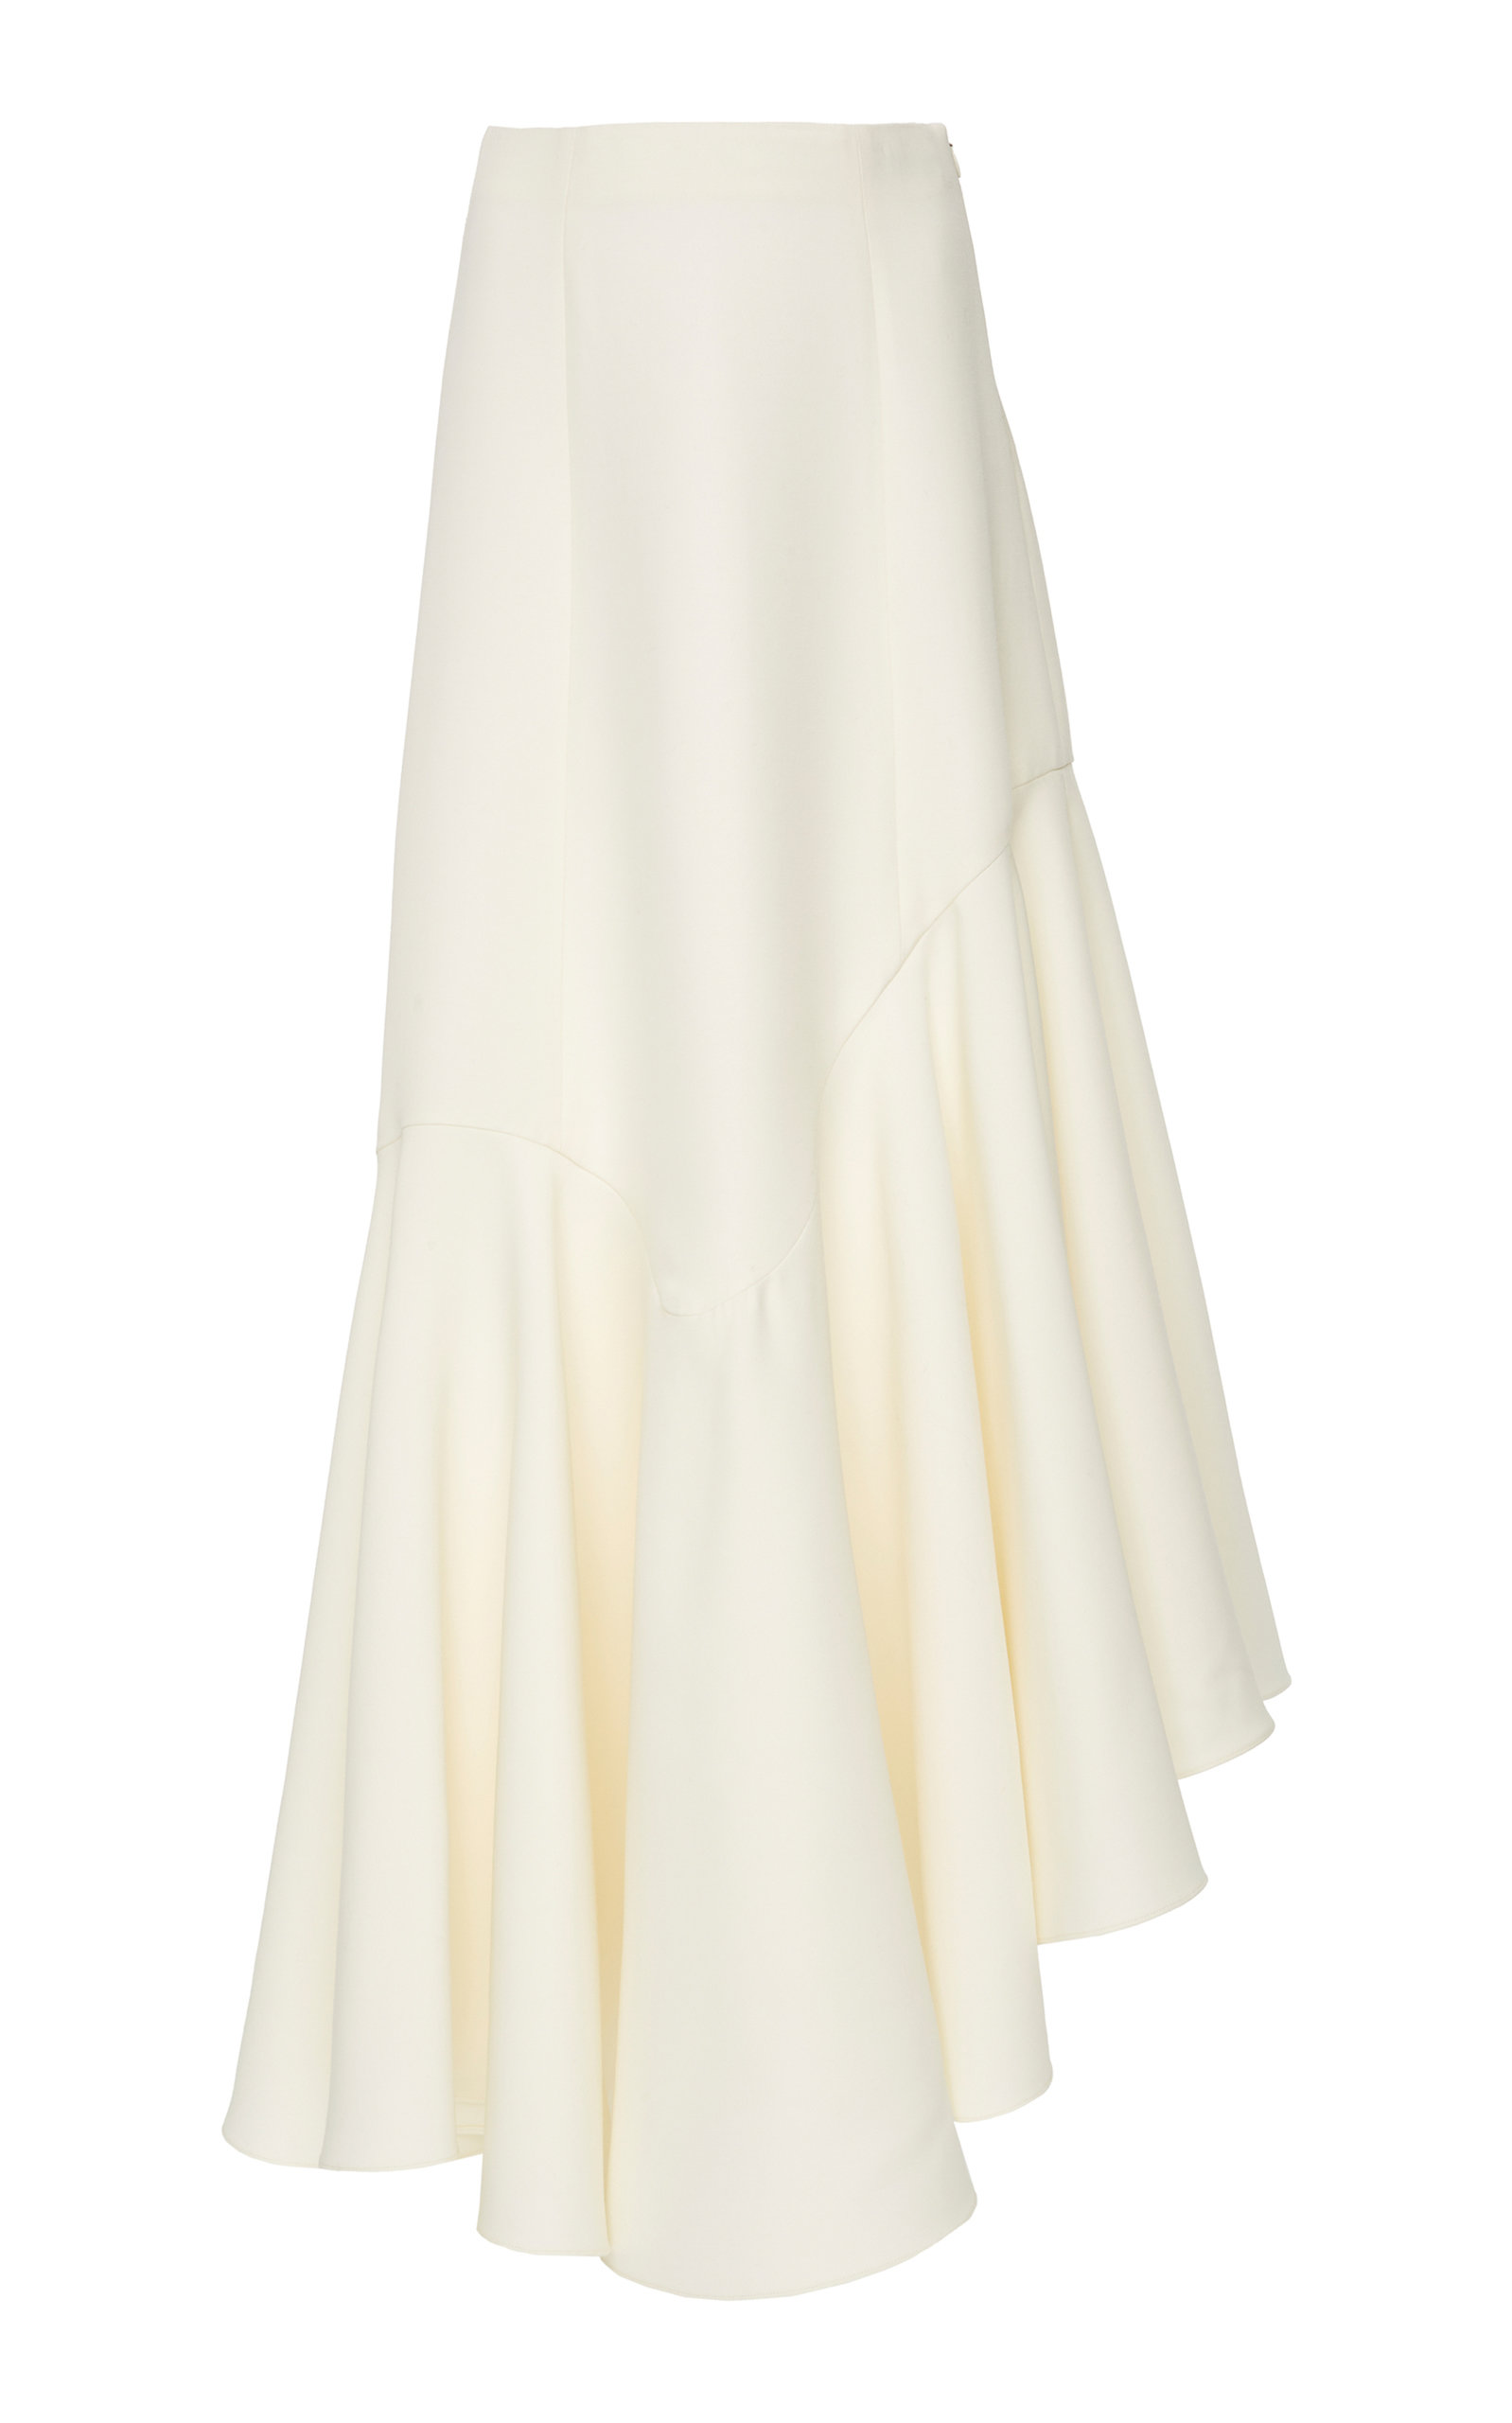 YEON M'O Exclusive Demetria Pleated Asymmetric Wool-Blend Skirt in White